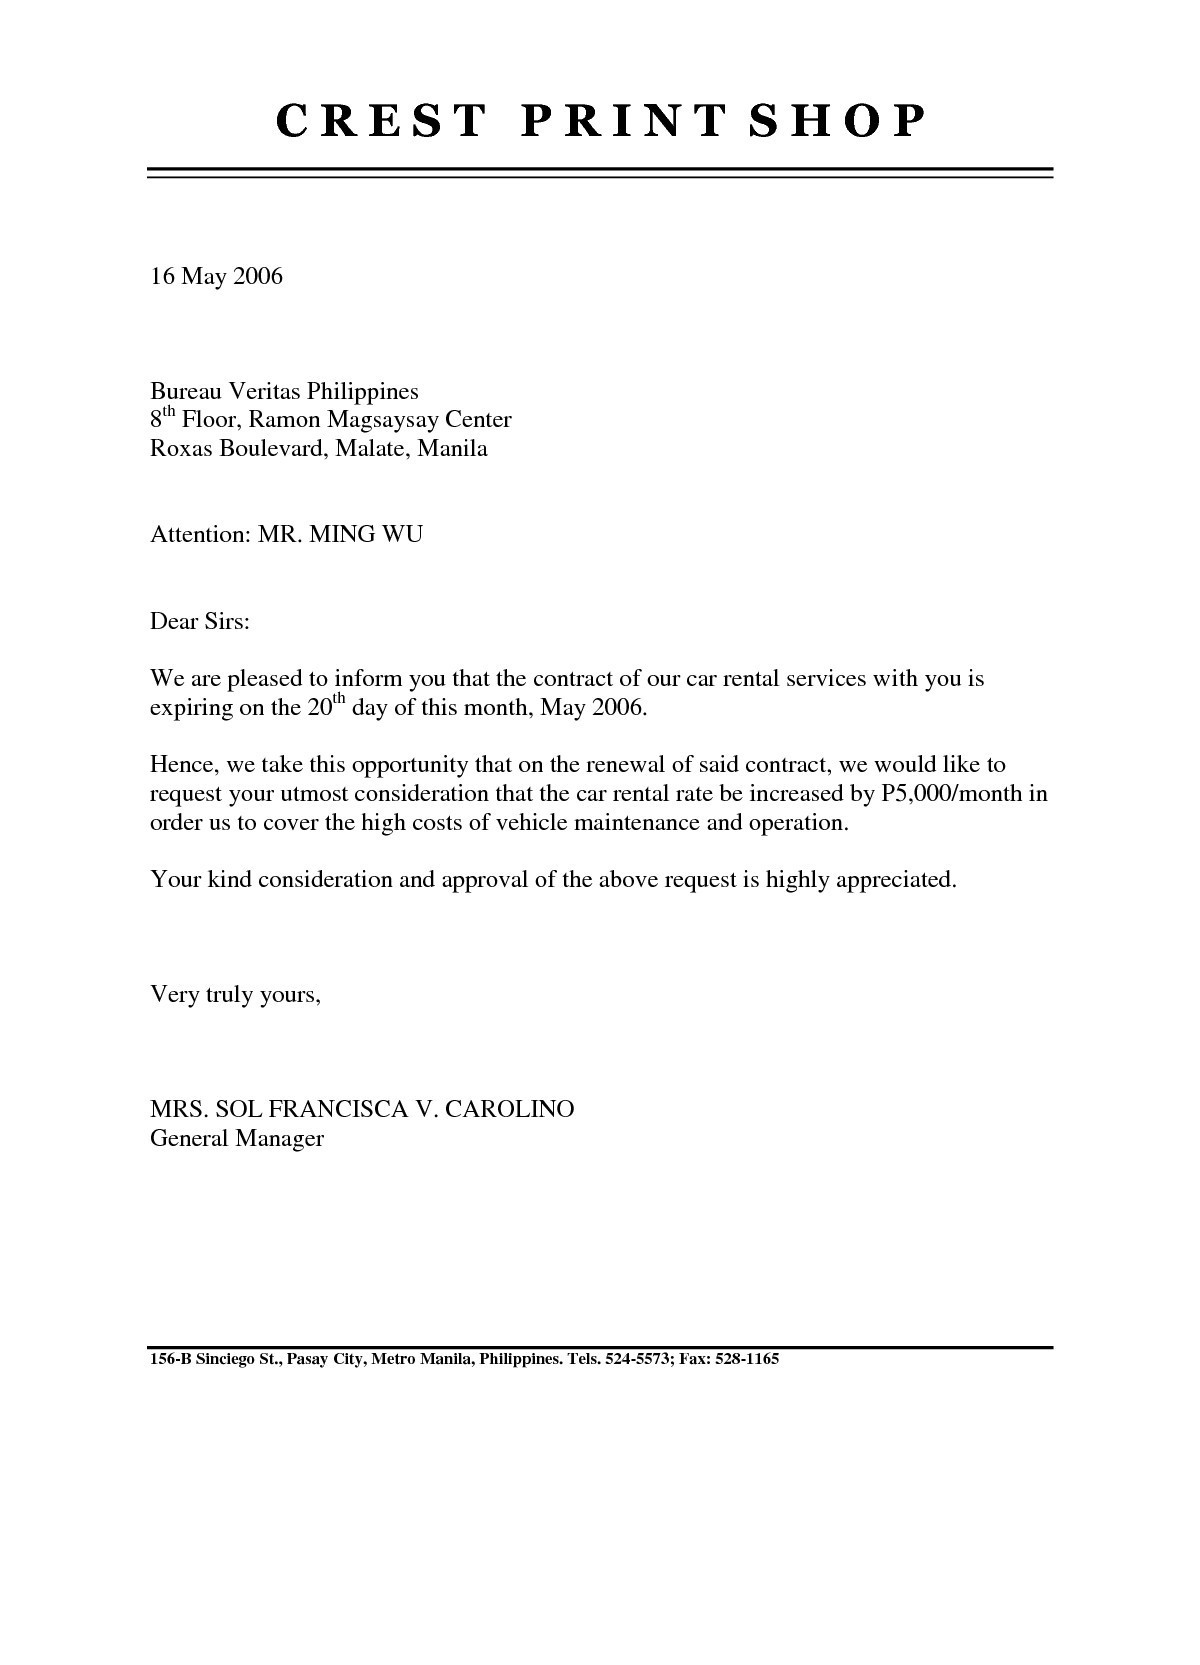 Rental Agreement Letter Template - Tenancy Agreement Renewal Template